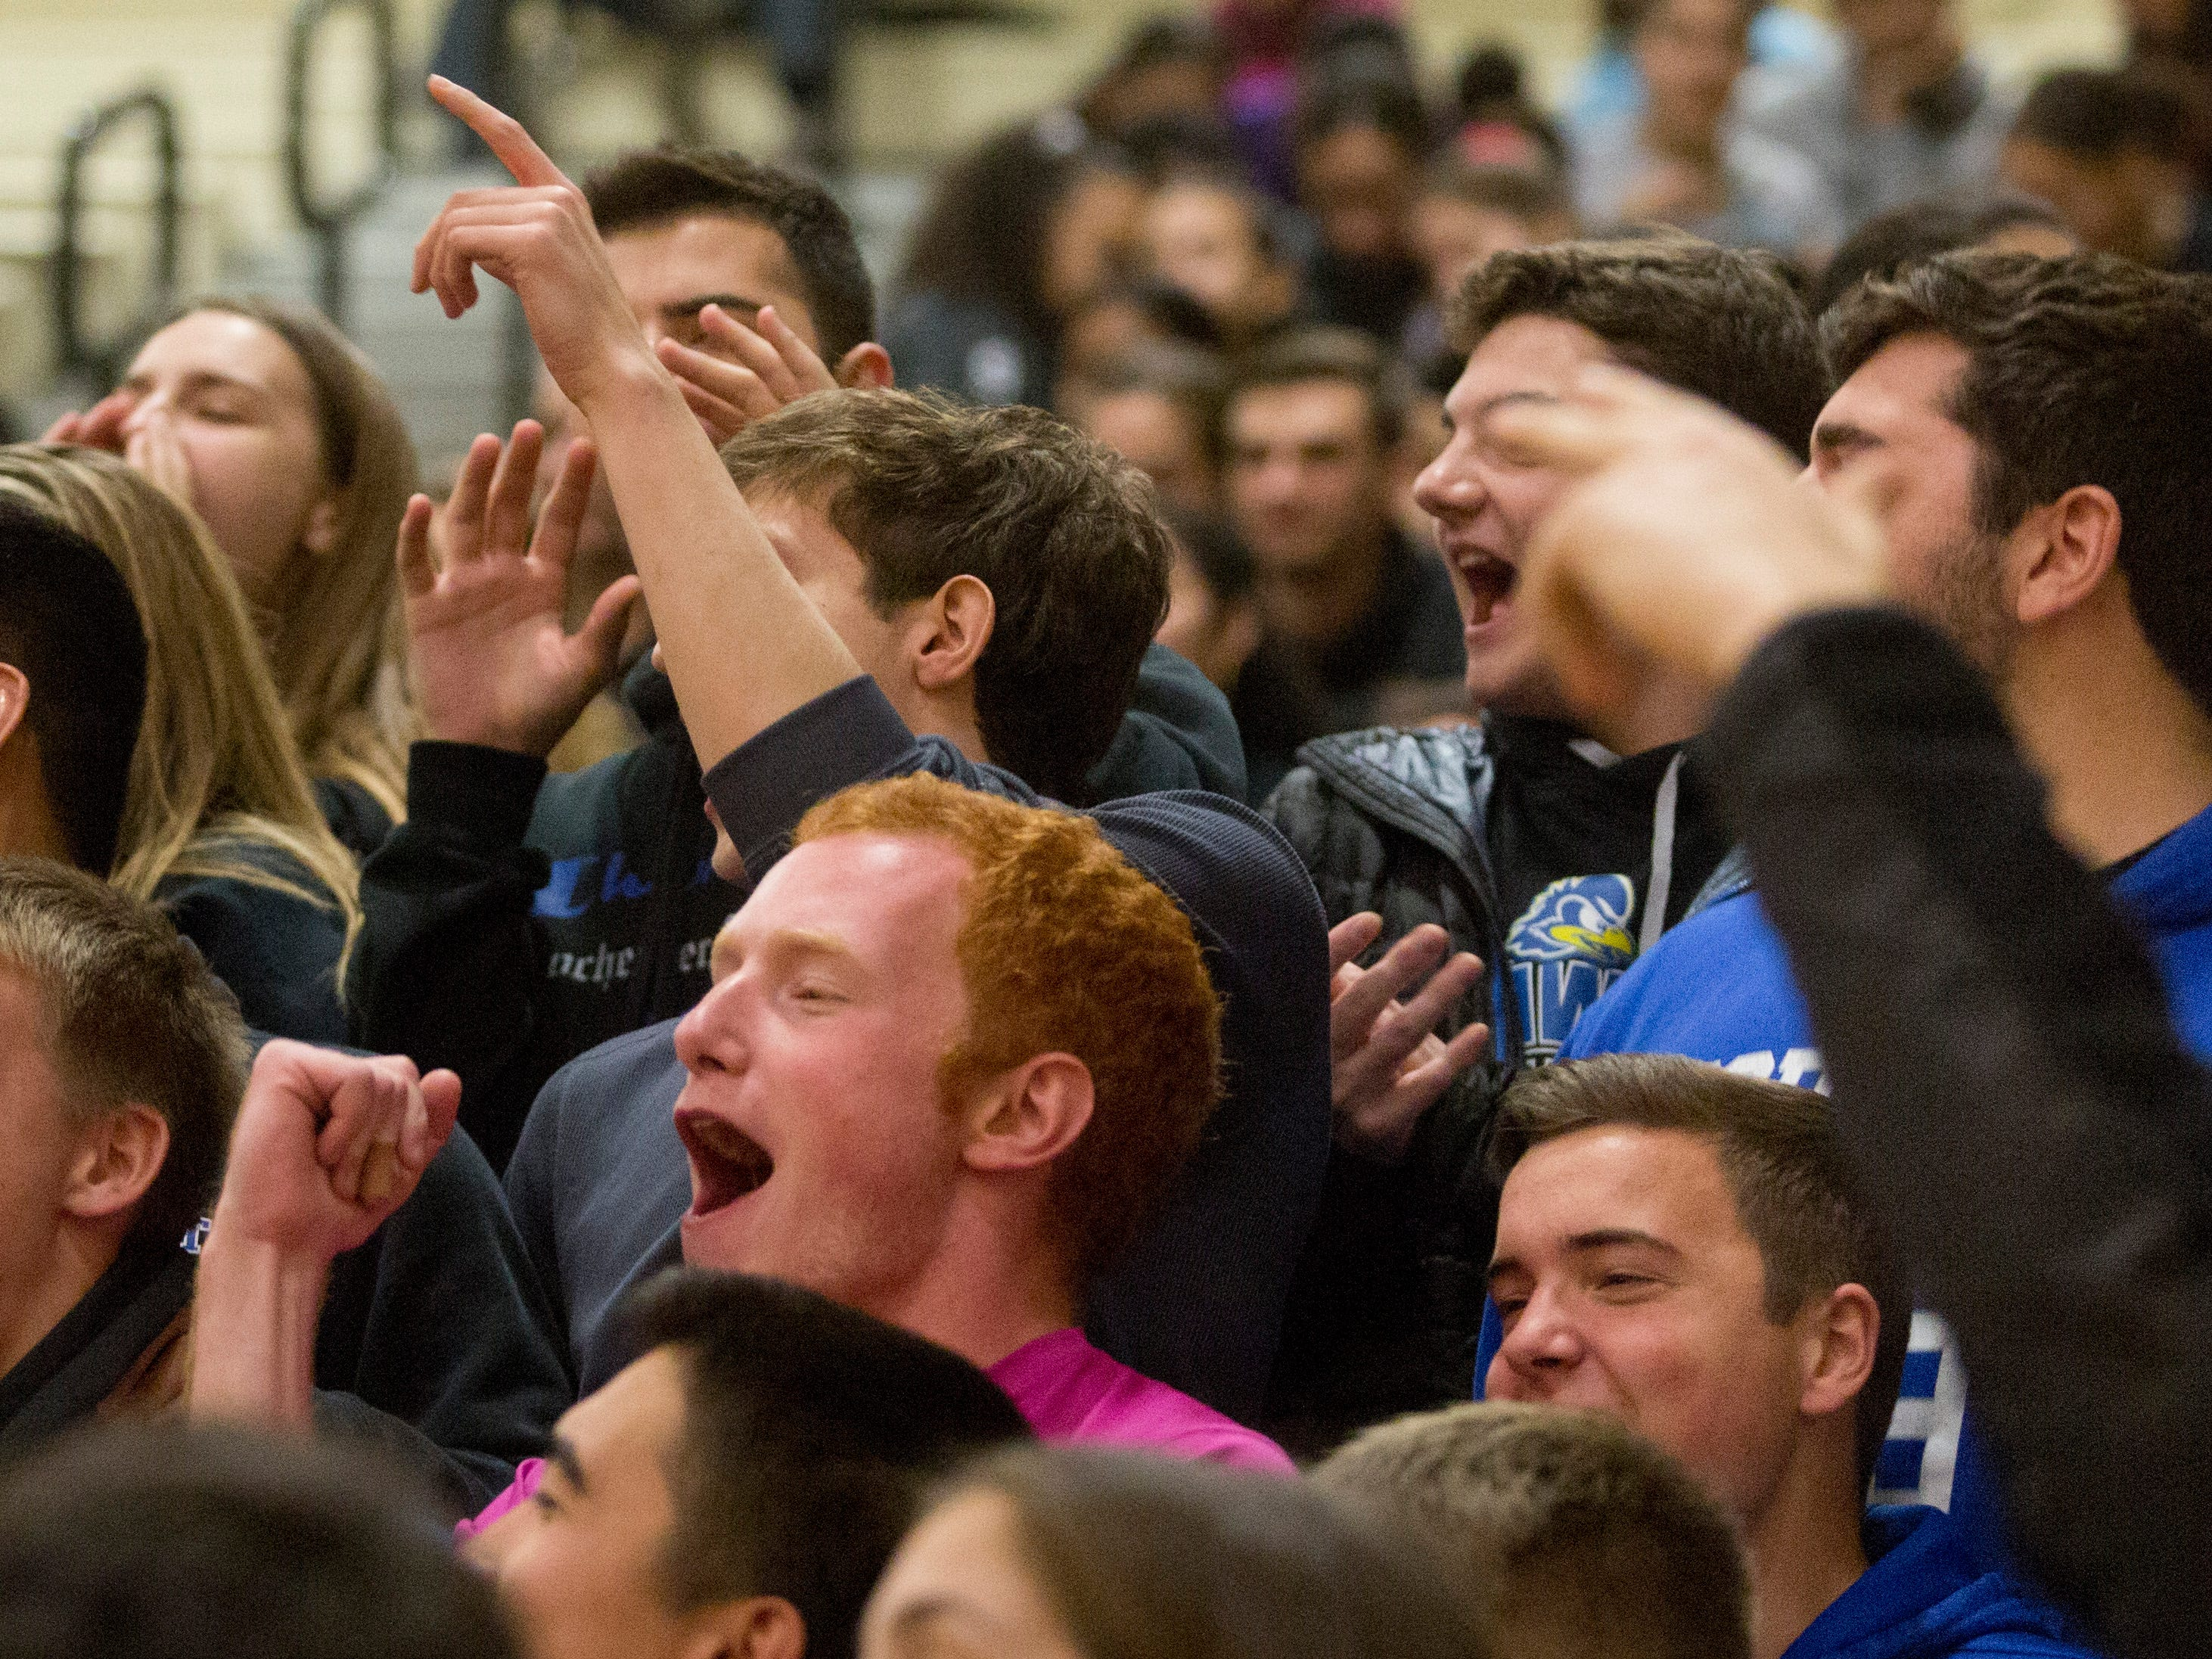 Aidan Bain (left) cheers for Northern Valley Regional at Demarest during the NJSIAA volleyball group two finals at William Paterson Recreation Center. Demarest won 25-13, 25-9.